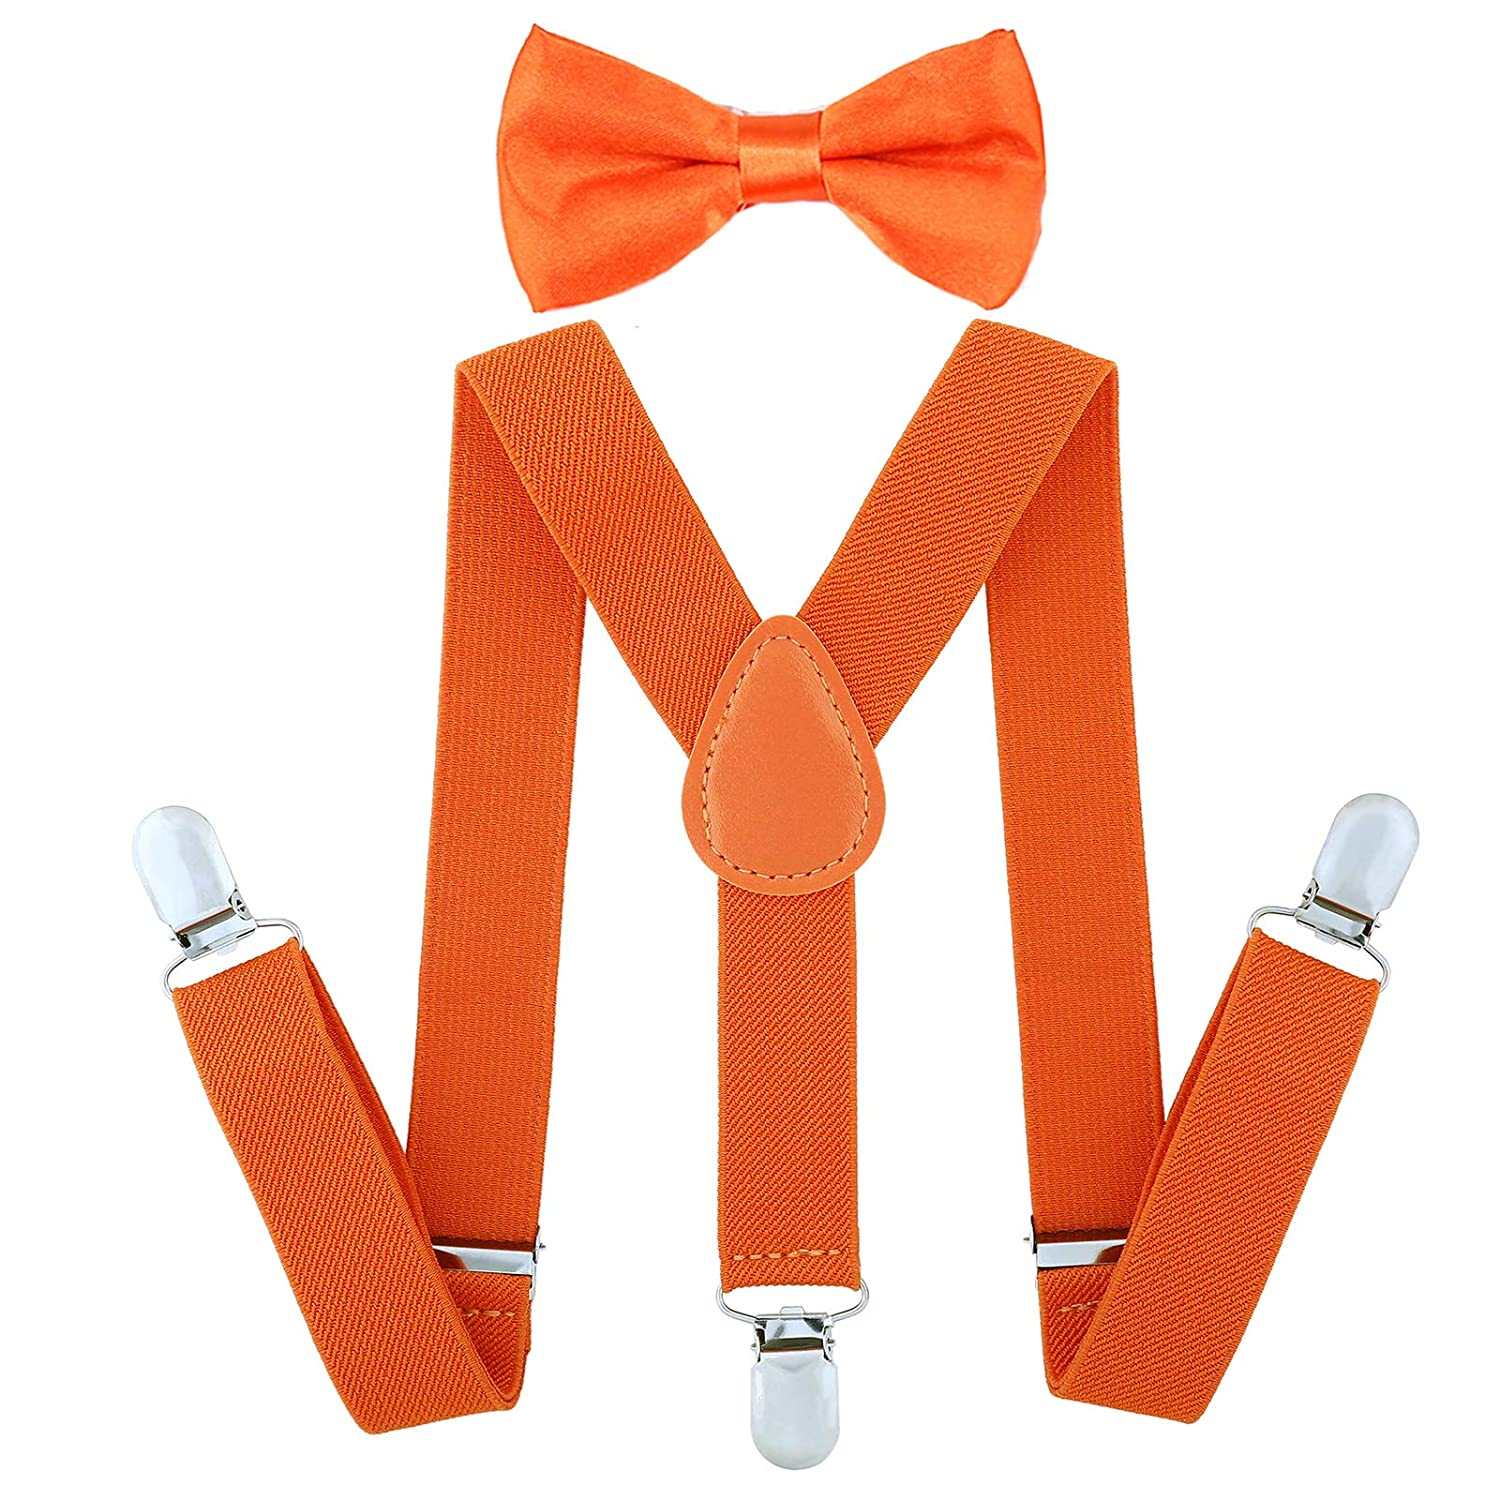 Child Kids Suspenders Bowtie Set - Adjustable Length 1 Inches Suspender with Bow Tie Set for Boys and Girls (Black) 608255065388